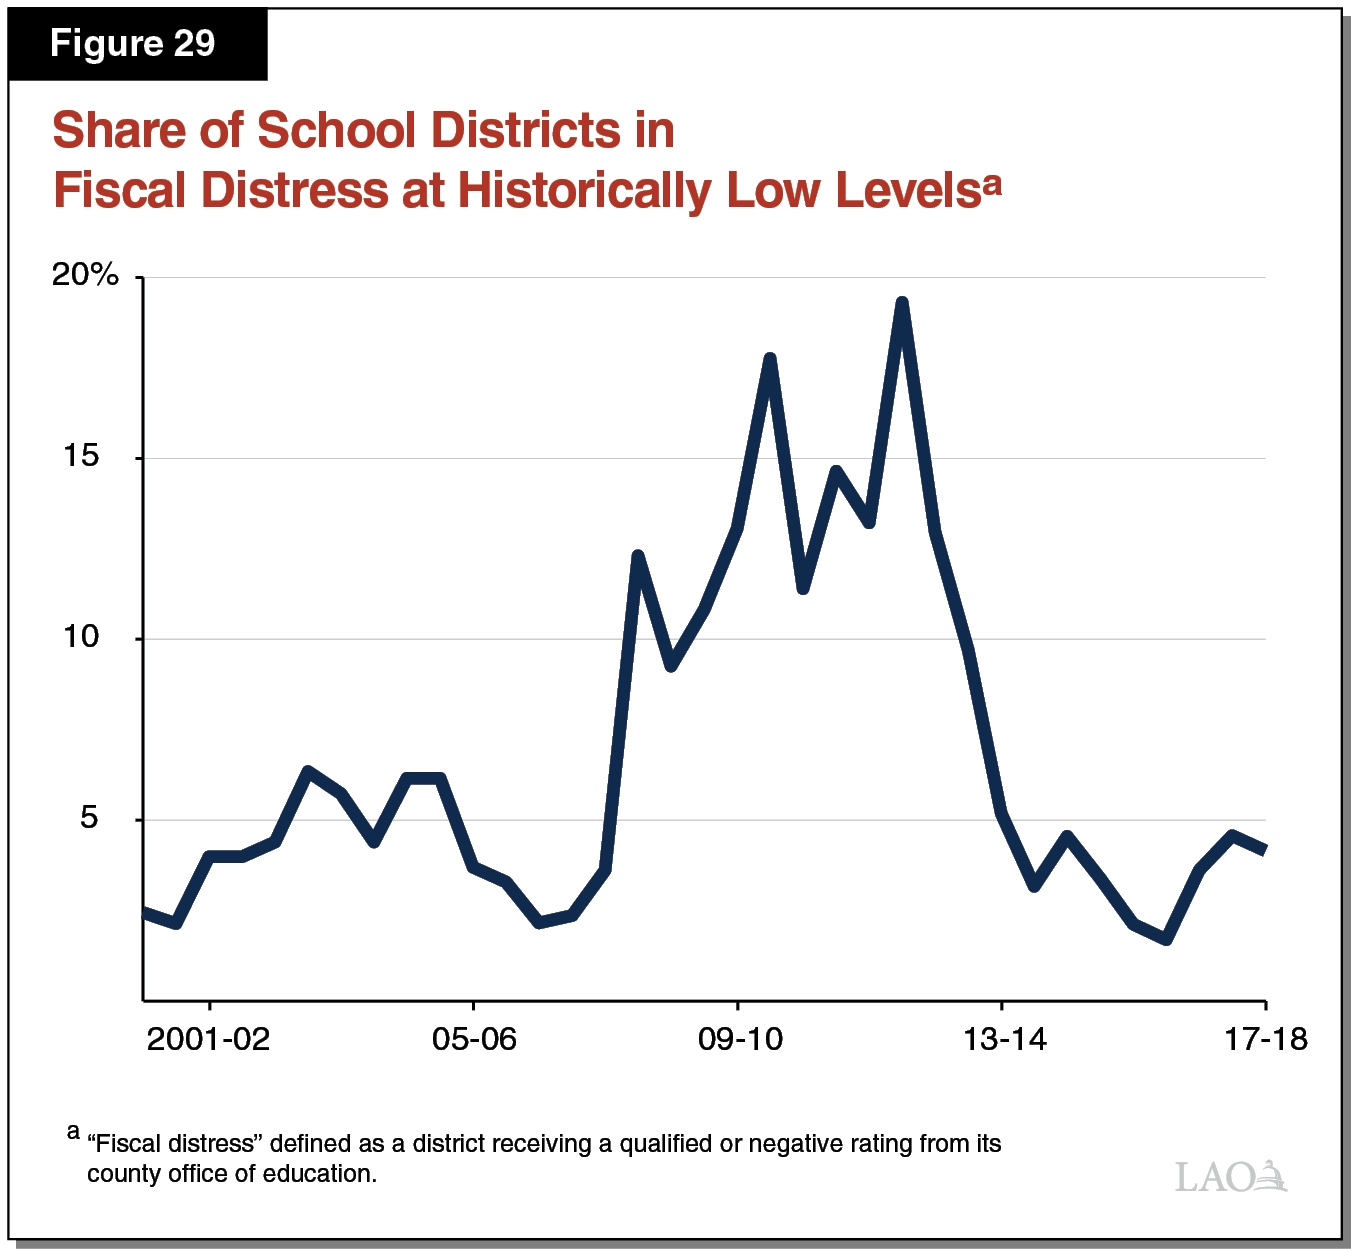 Figure 29 - Share of School Districts in Fiscal Distress at Historically Low Levels